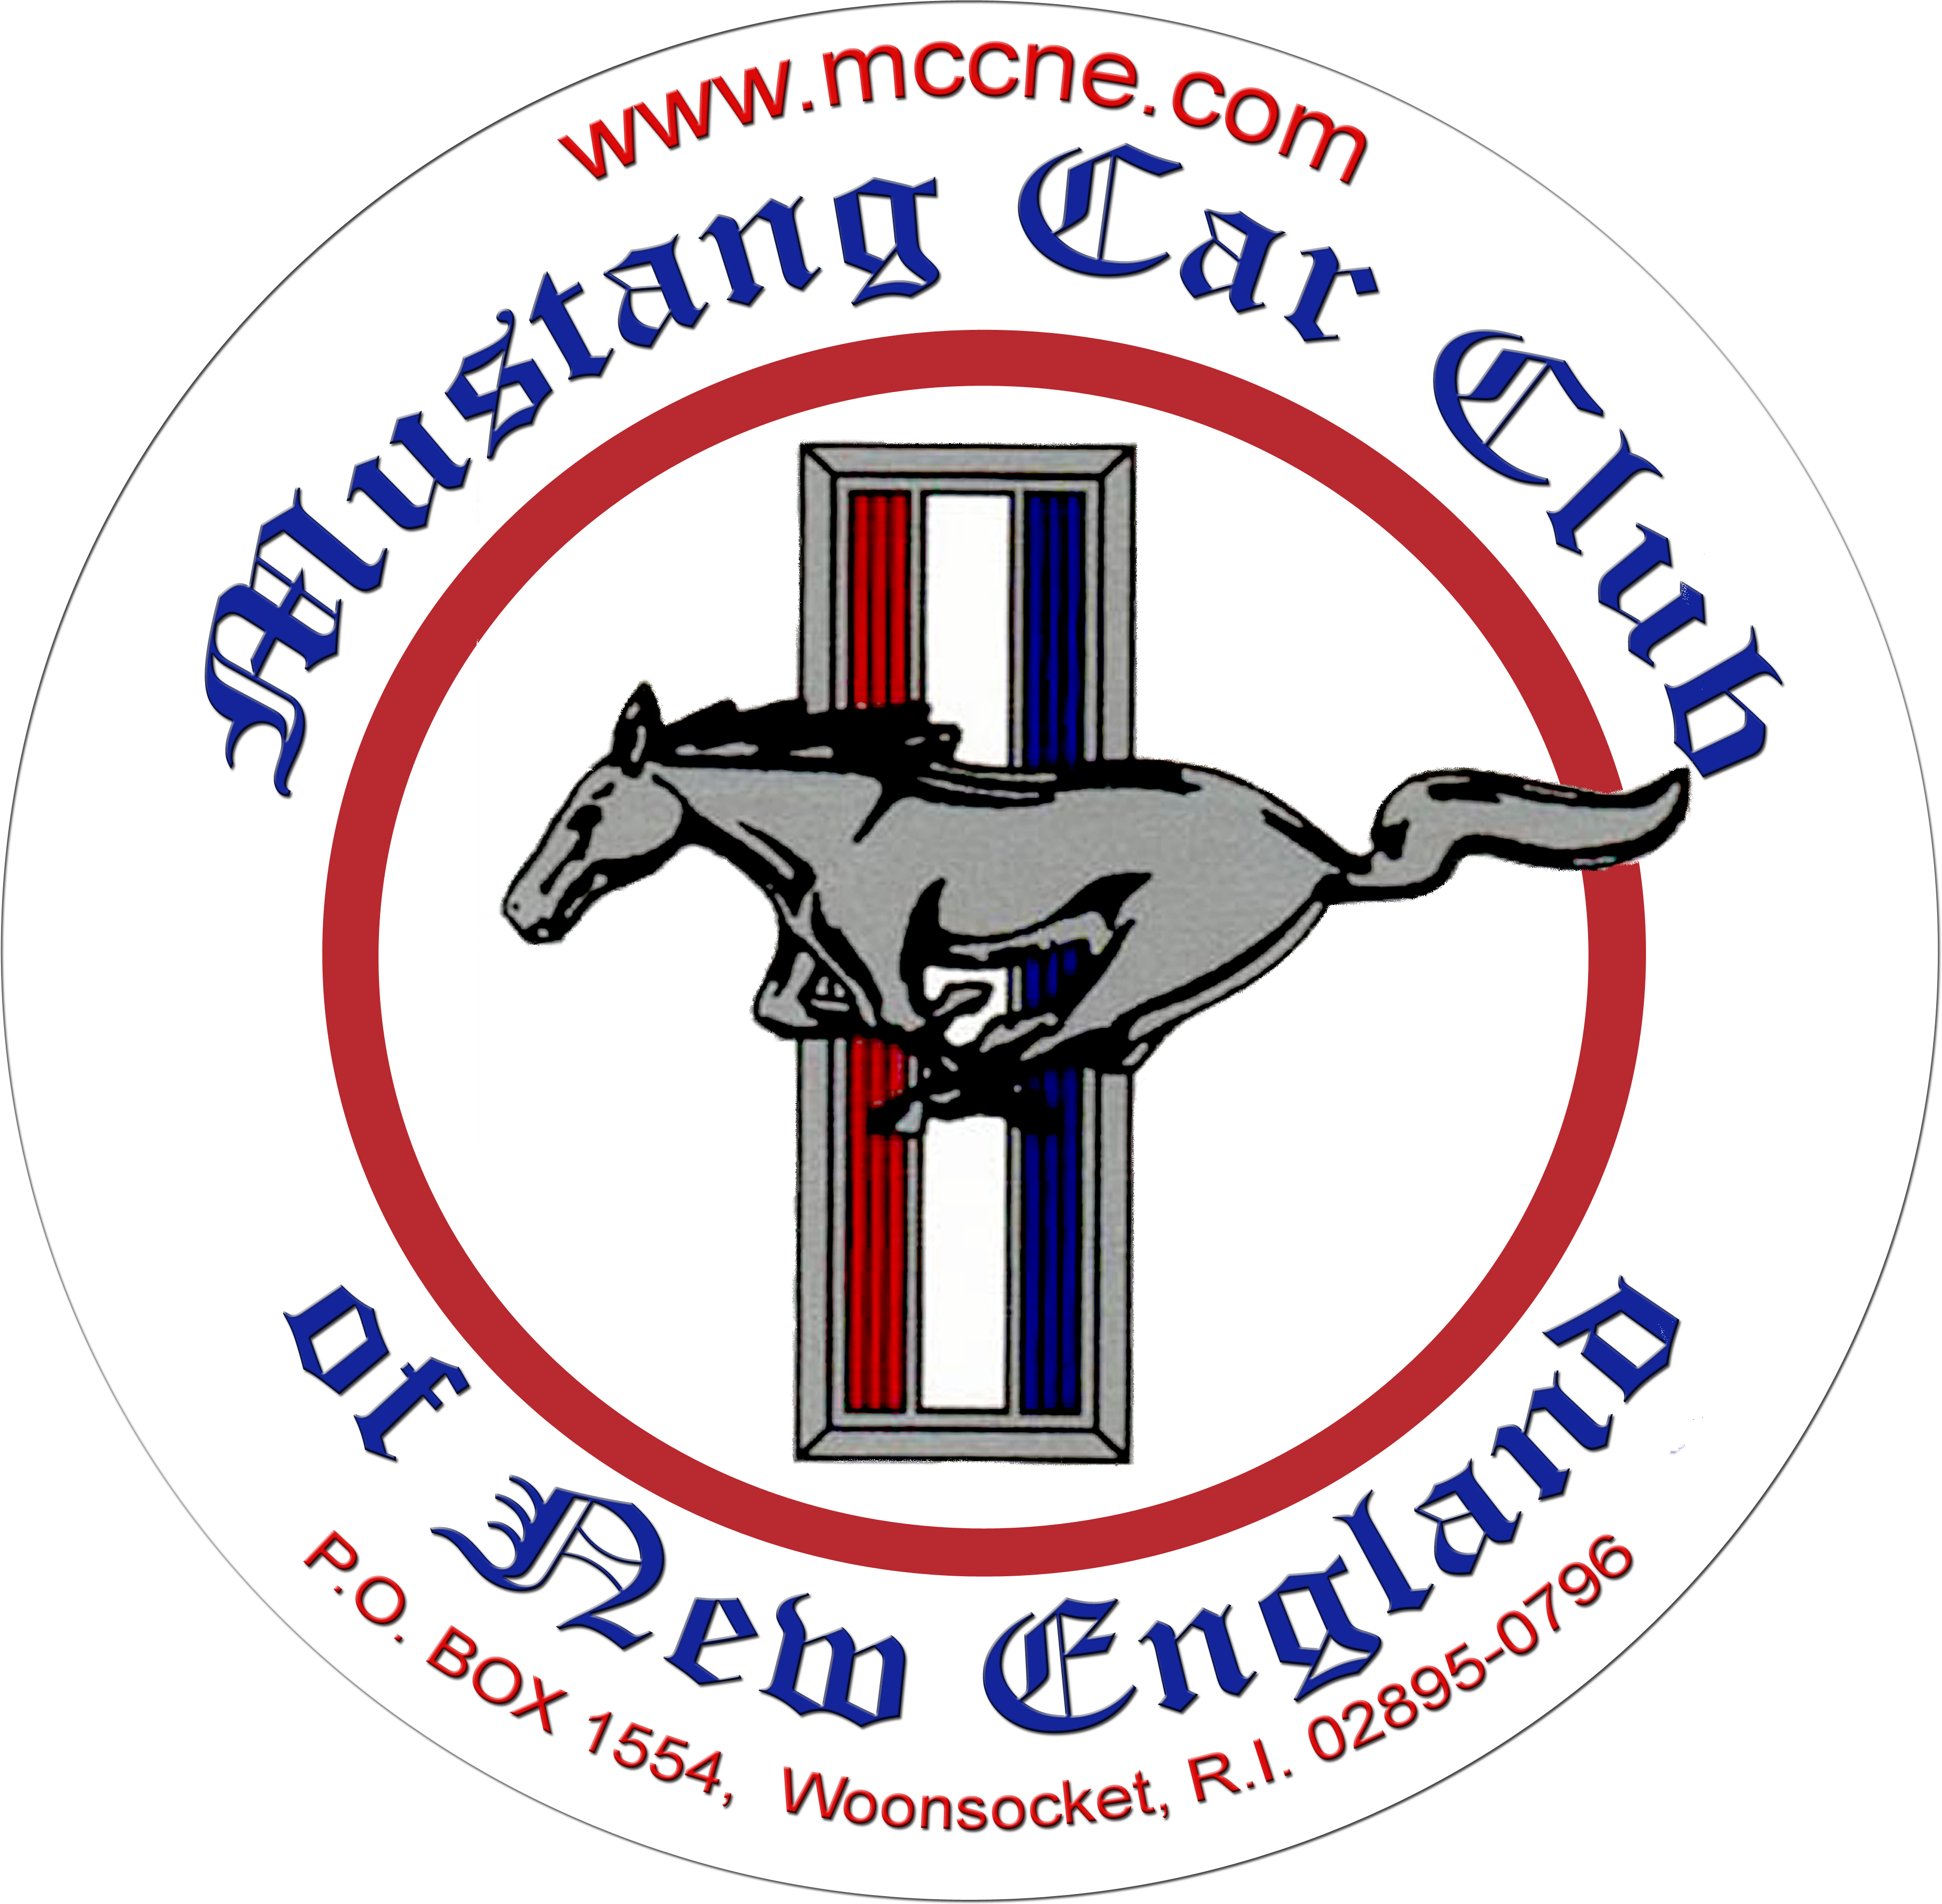 Cape Cod Mustang :: Classic Mustang Sales & Restoration